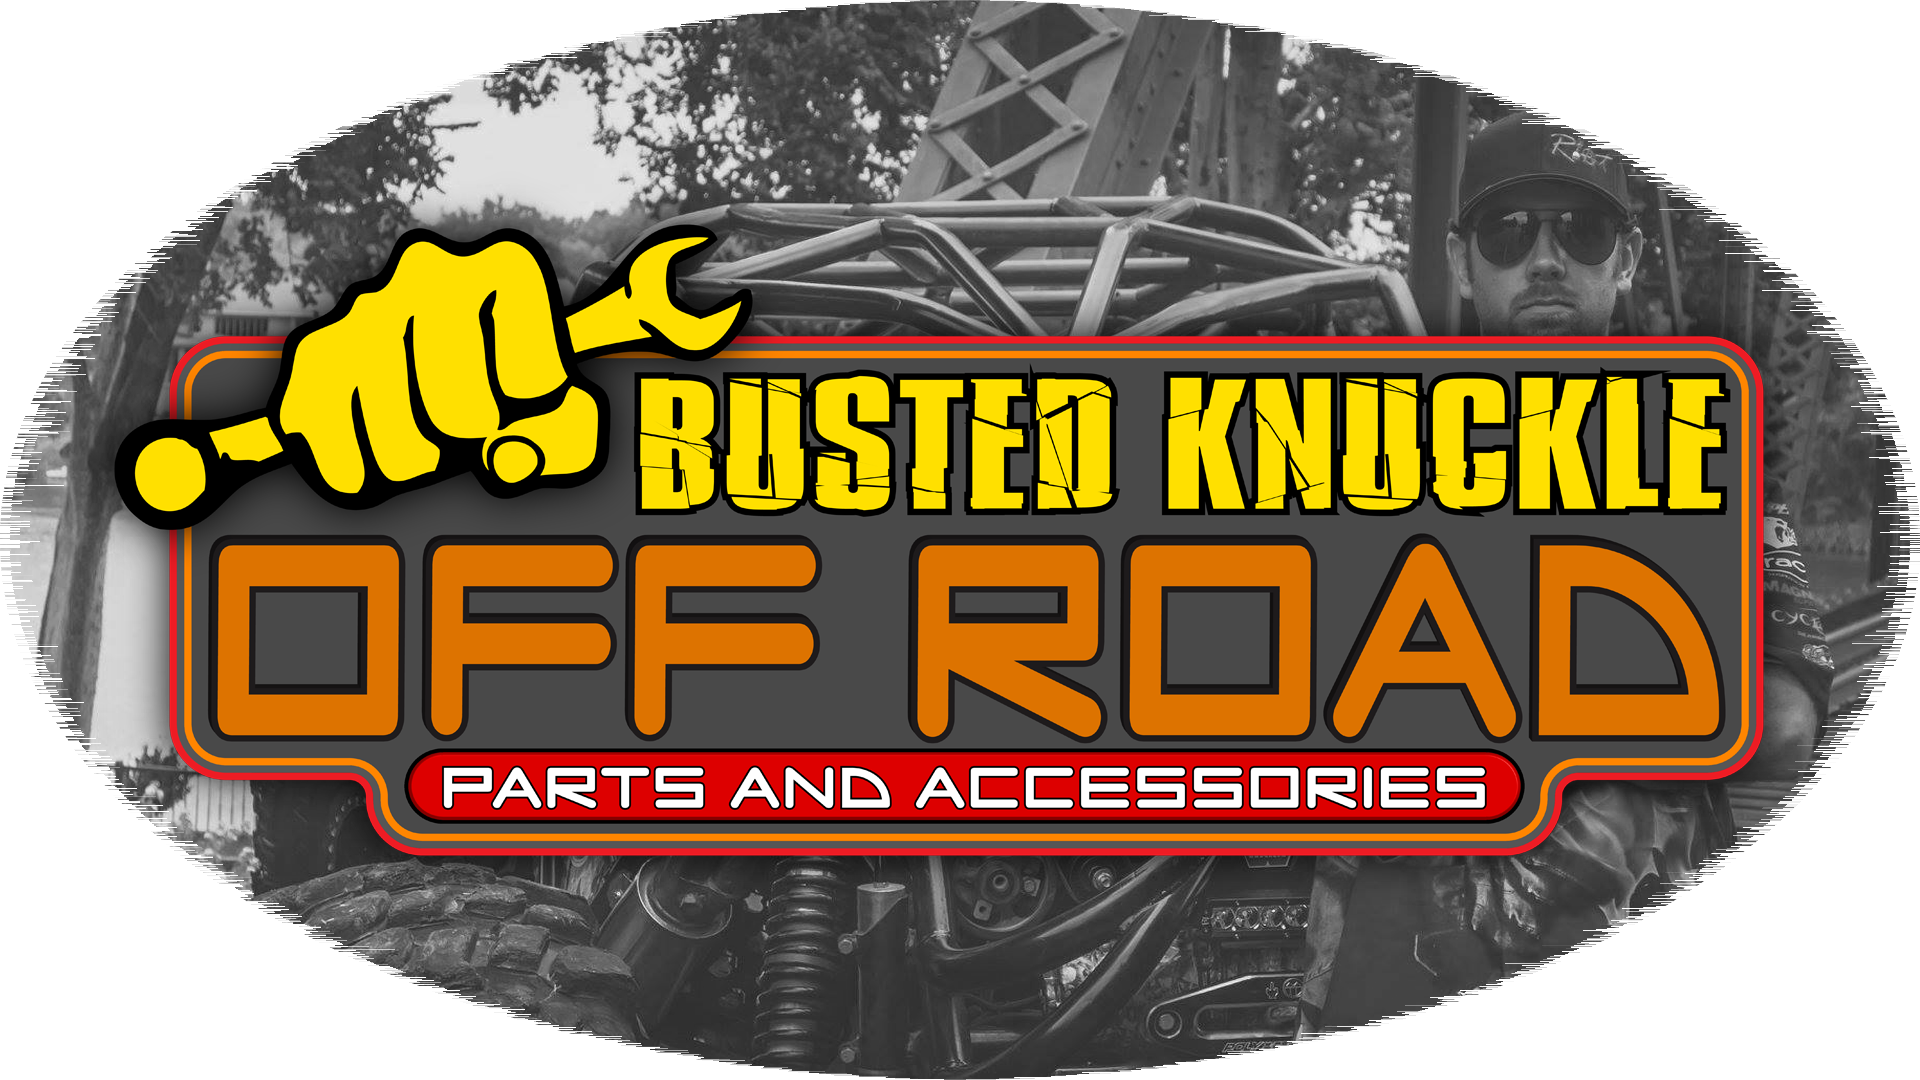 Busted Knuckle Off Road Parts Store